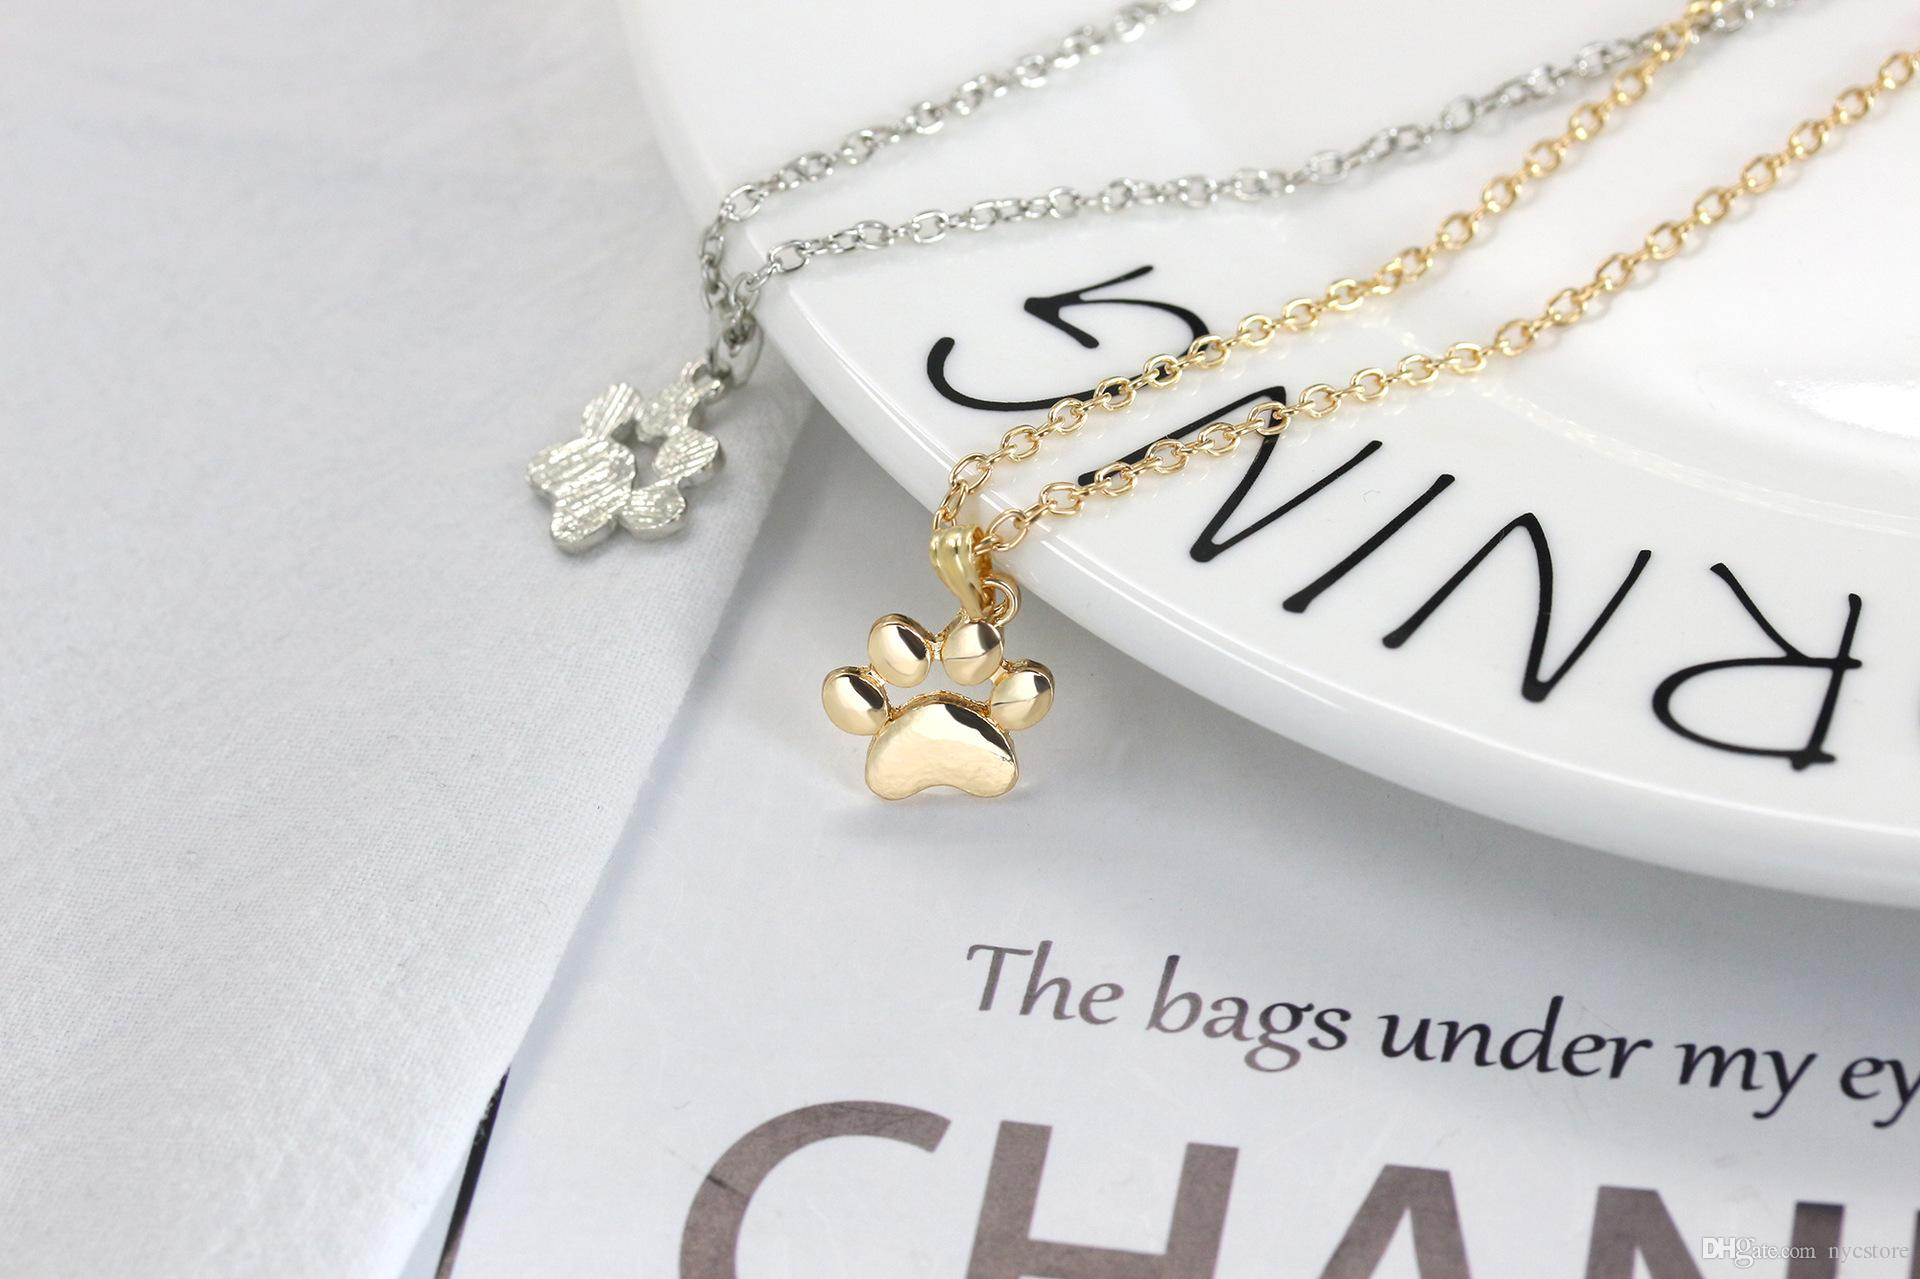 Metal alloy Cute animal cat paw feet necklace gold silver dog claw paws shaped pendant necklace women girl's fashion jewelry